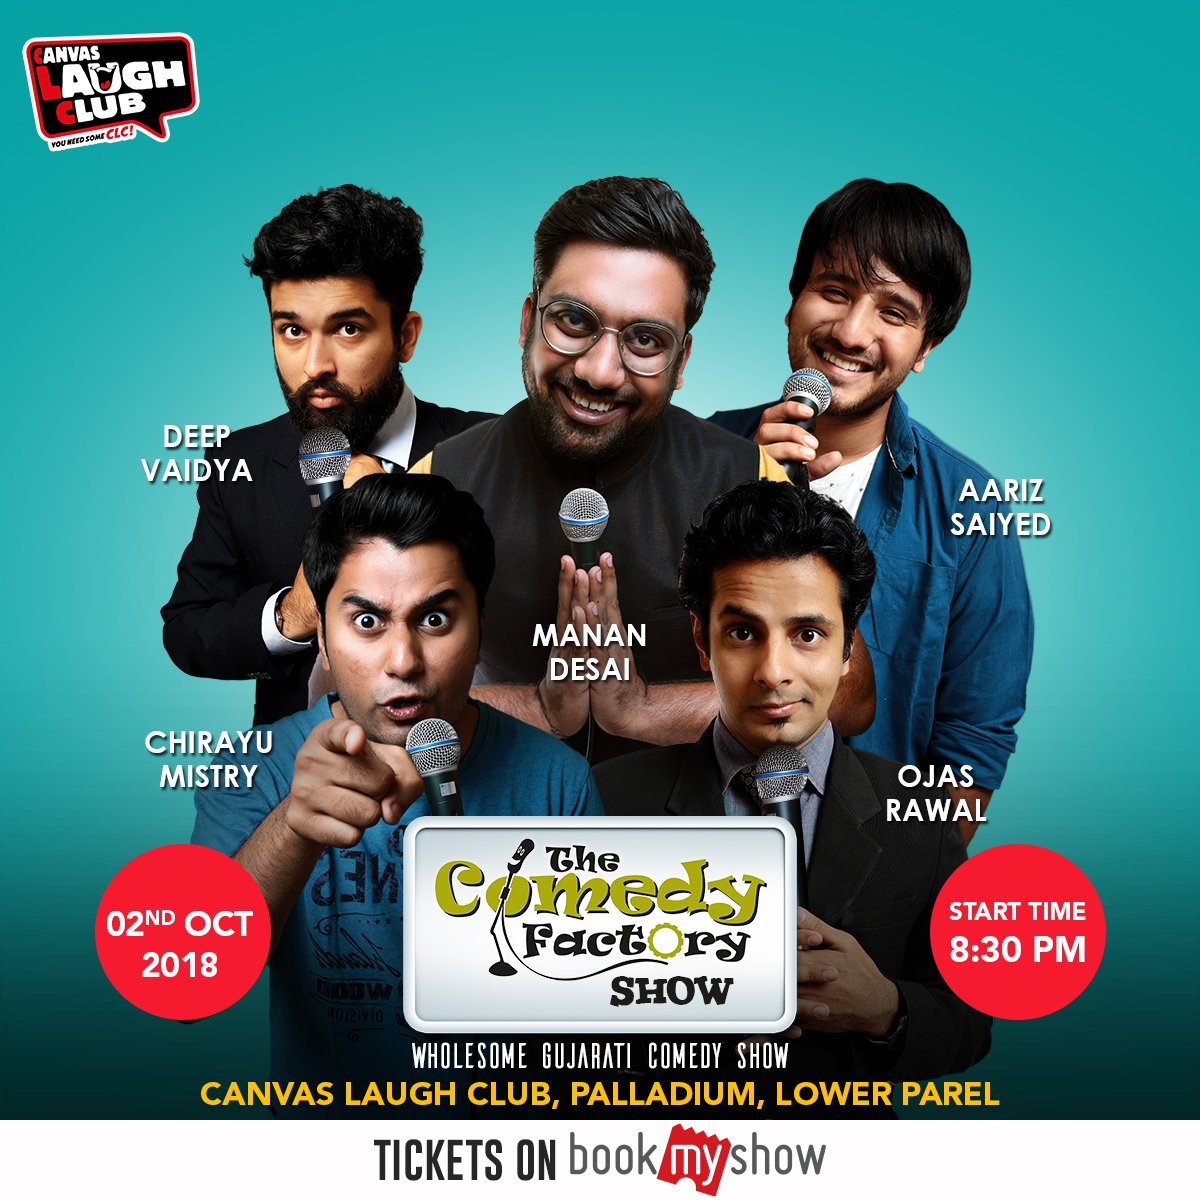 Tomorrow in Mumbai. આવી જાવ બધા ગુજરાતિઓ. #Mumbai #TheComedyFactory https://t.co/gz8eURVK0q